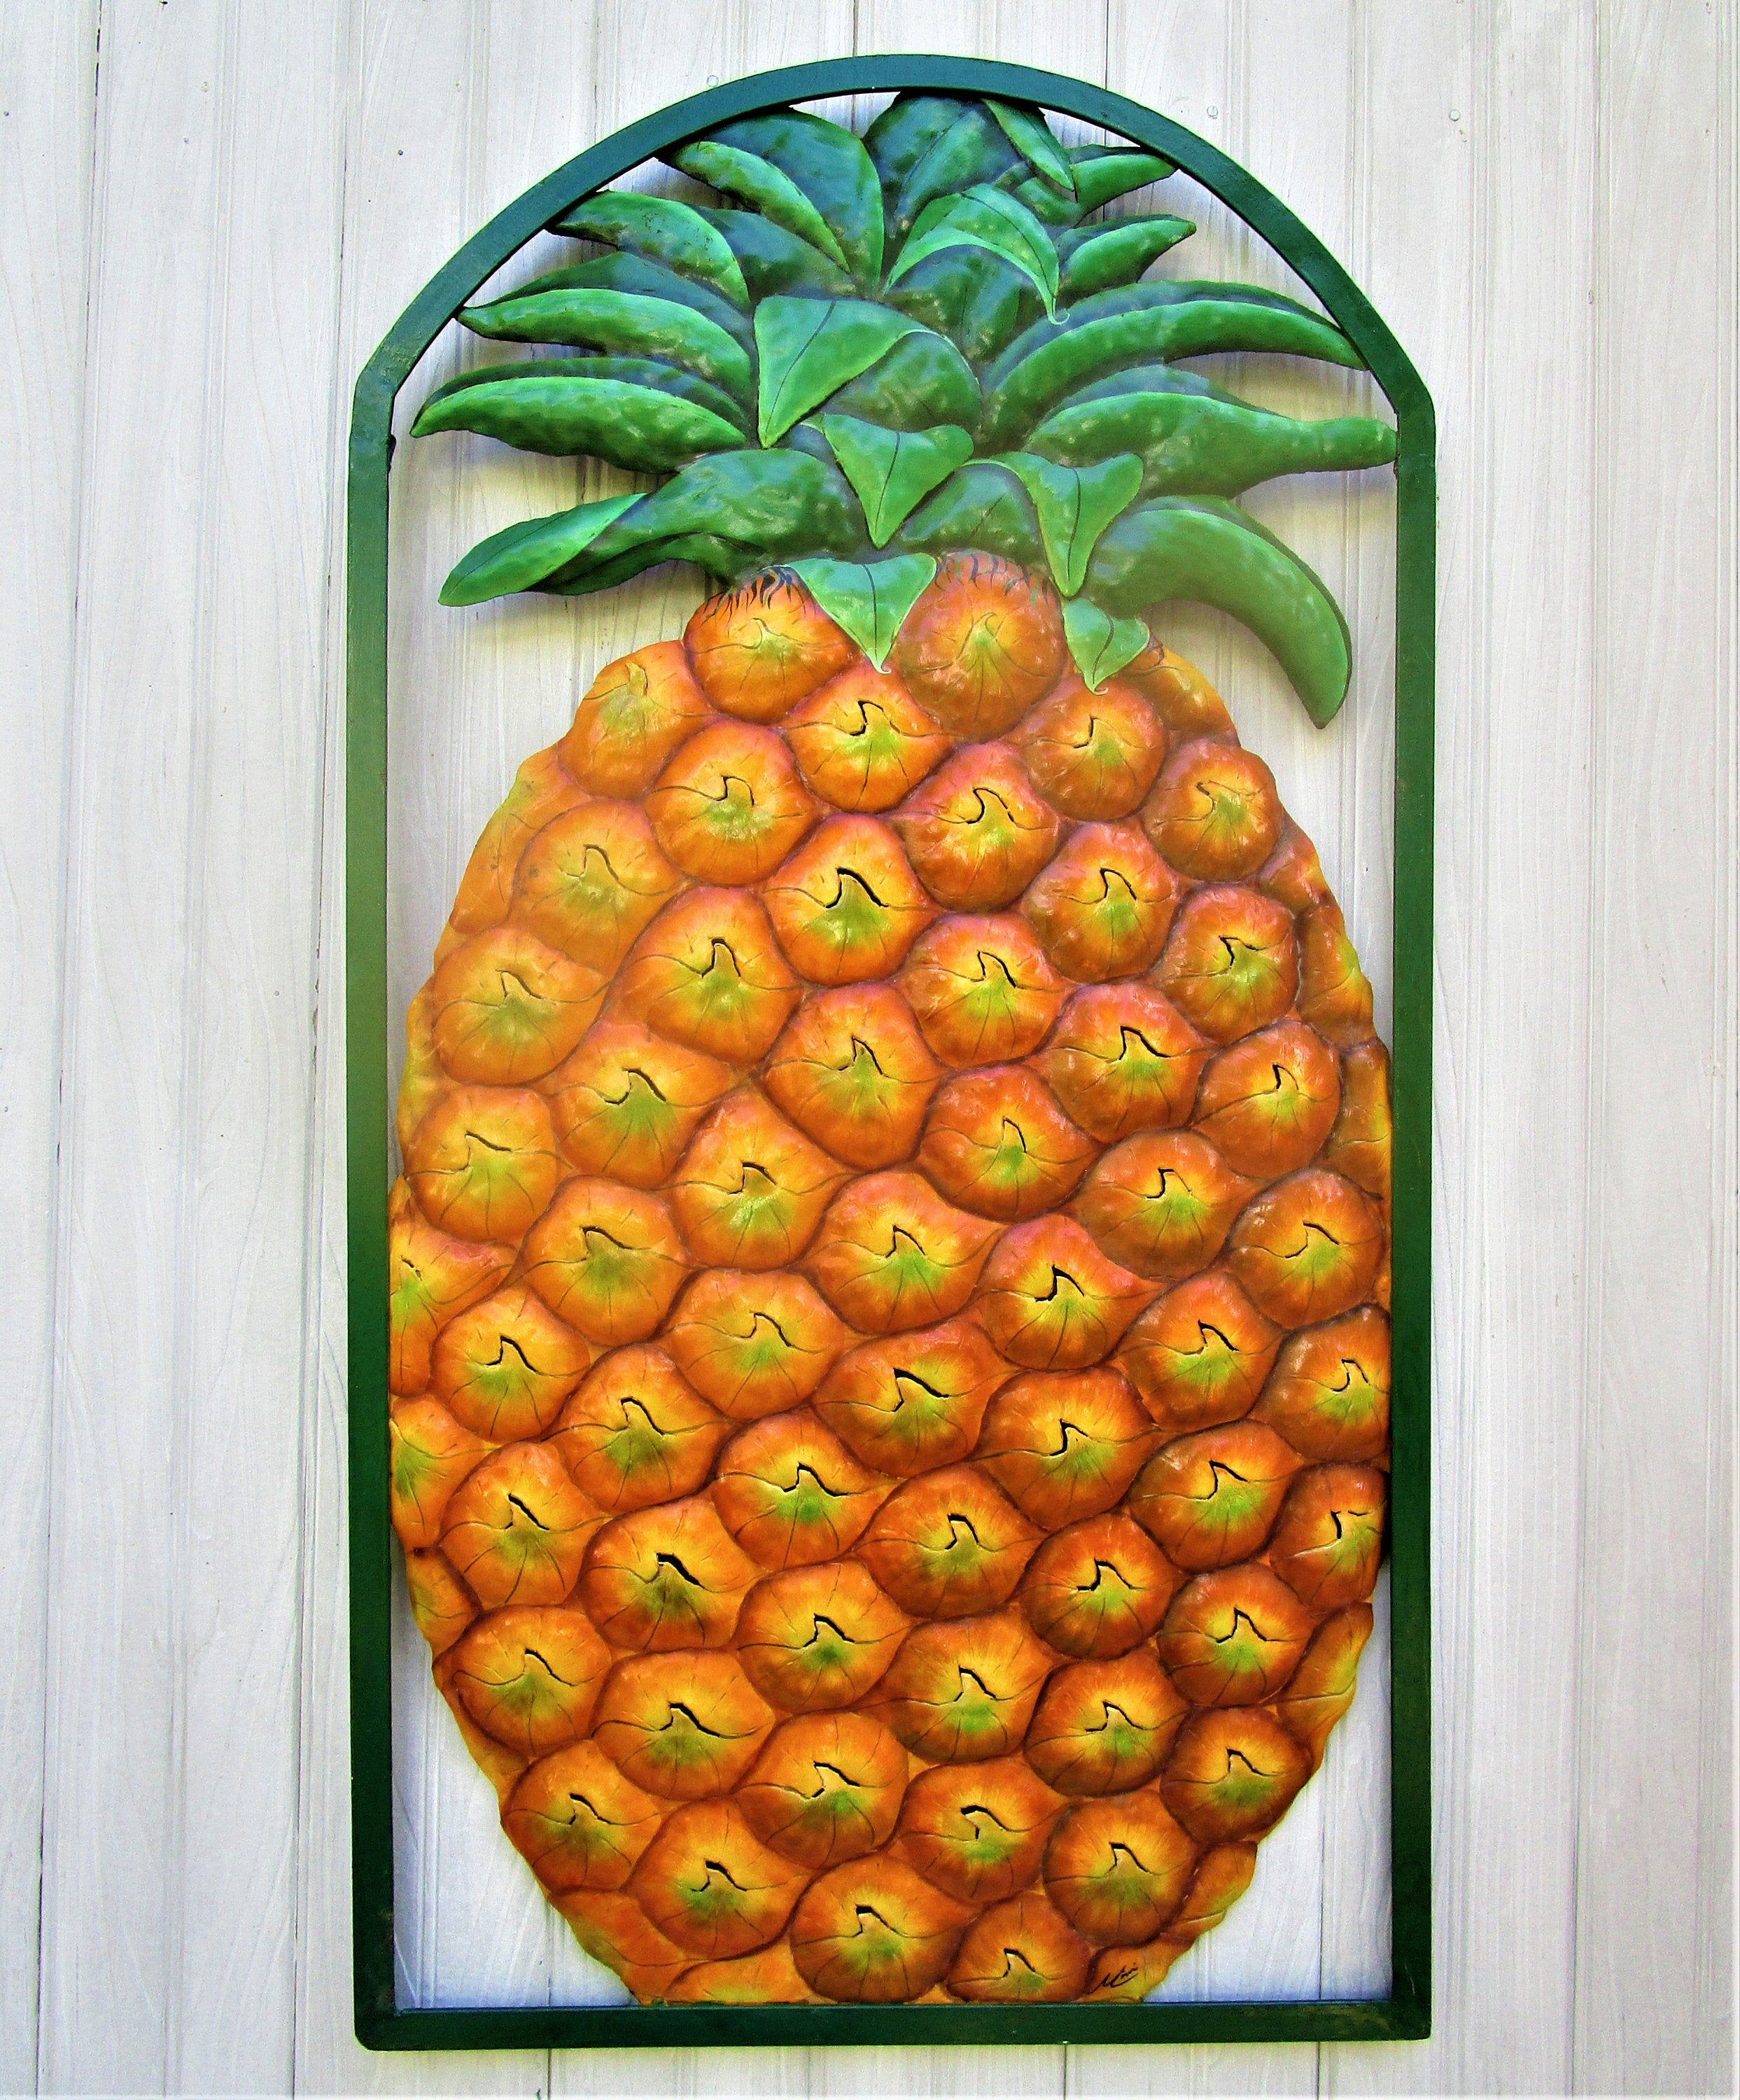 Pineapple Wall Decor Pier 1 Imports Pineapple Wall Art Pineapple Wall Decor Pineapple Art